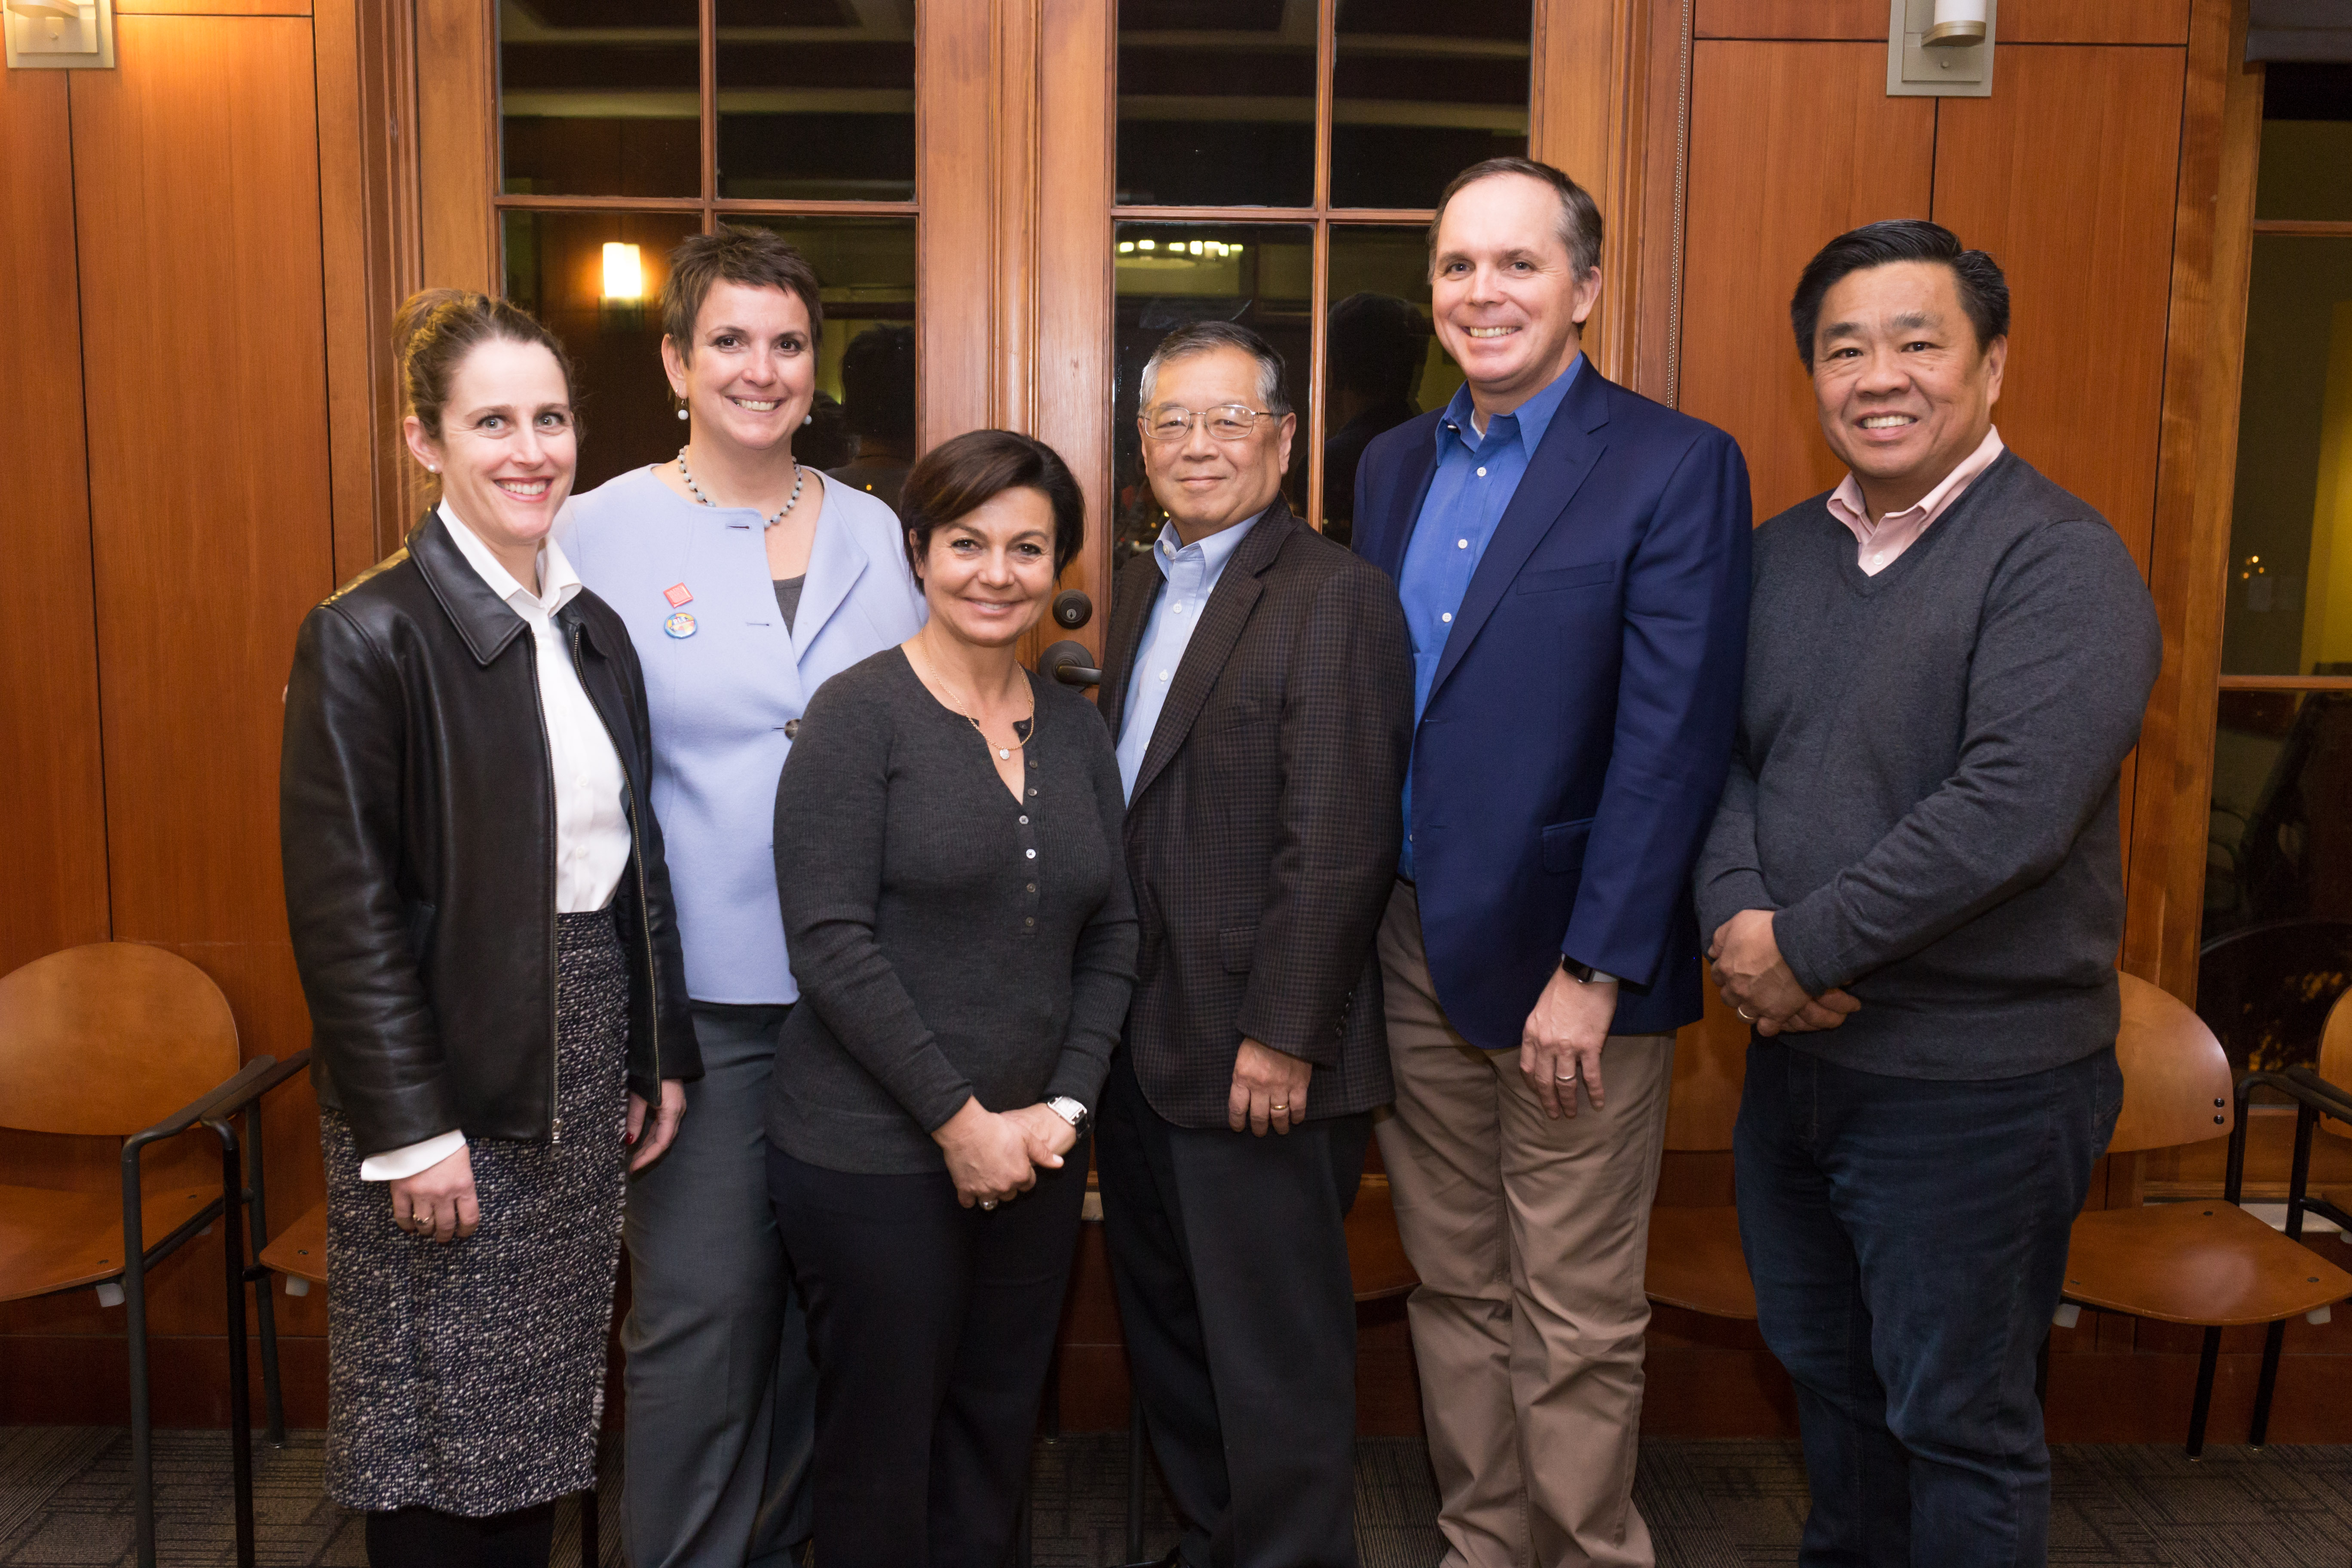 SMC's Heidi Stornetta-Butler (Advancement) and Dean Sheila Hassell Hughes gather with members of the SOLA Dean's Advisory Board: Christine Splichal, John Onoda, Jeff Leslie and Dickson Chu. Not pictured: Julie Berchtold, Wayne Billheimer.